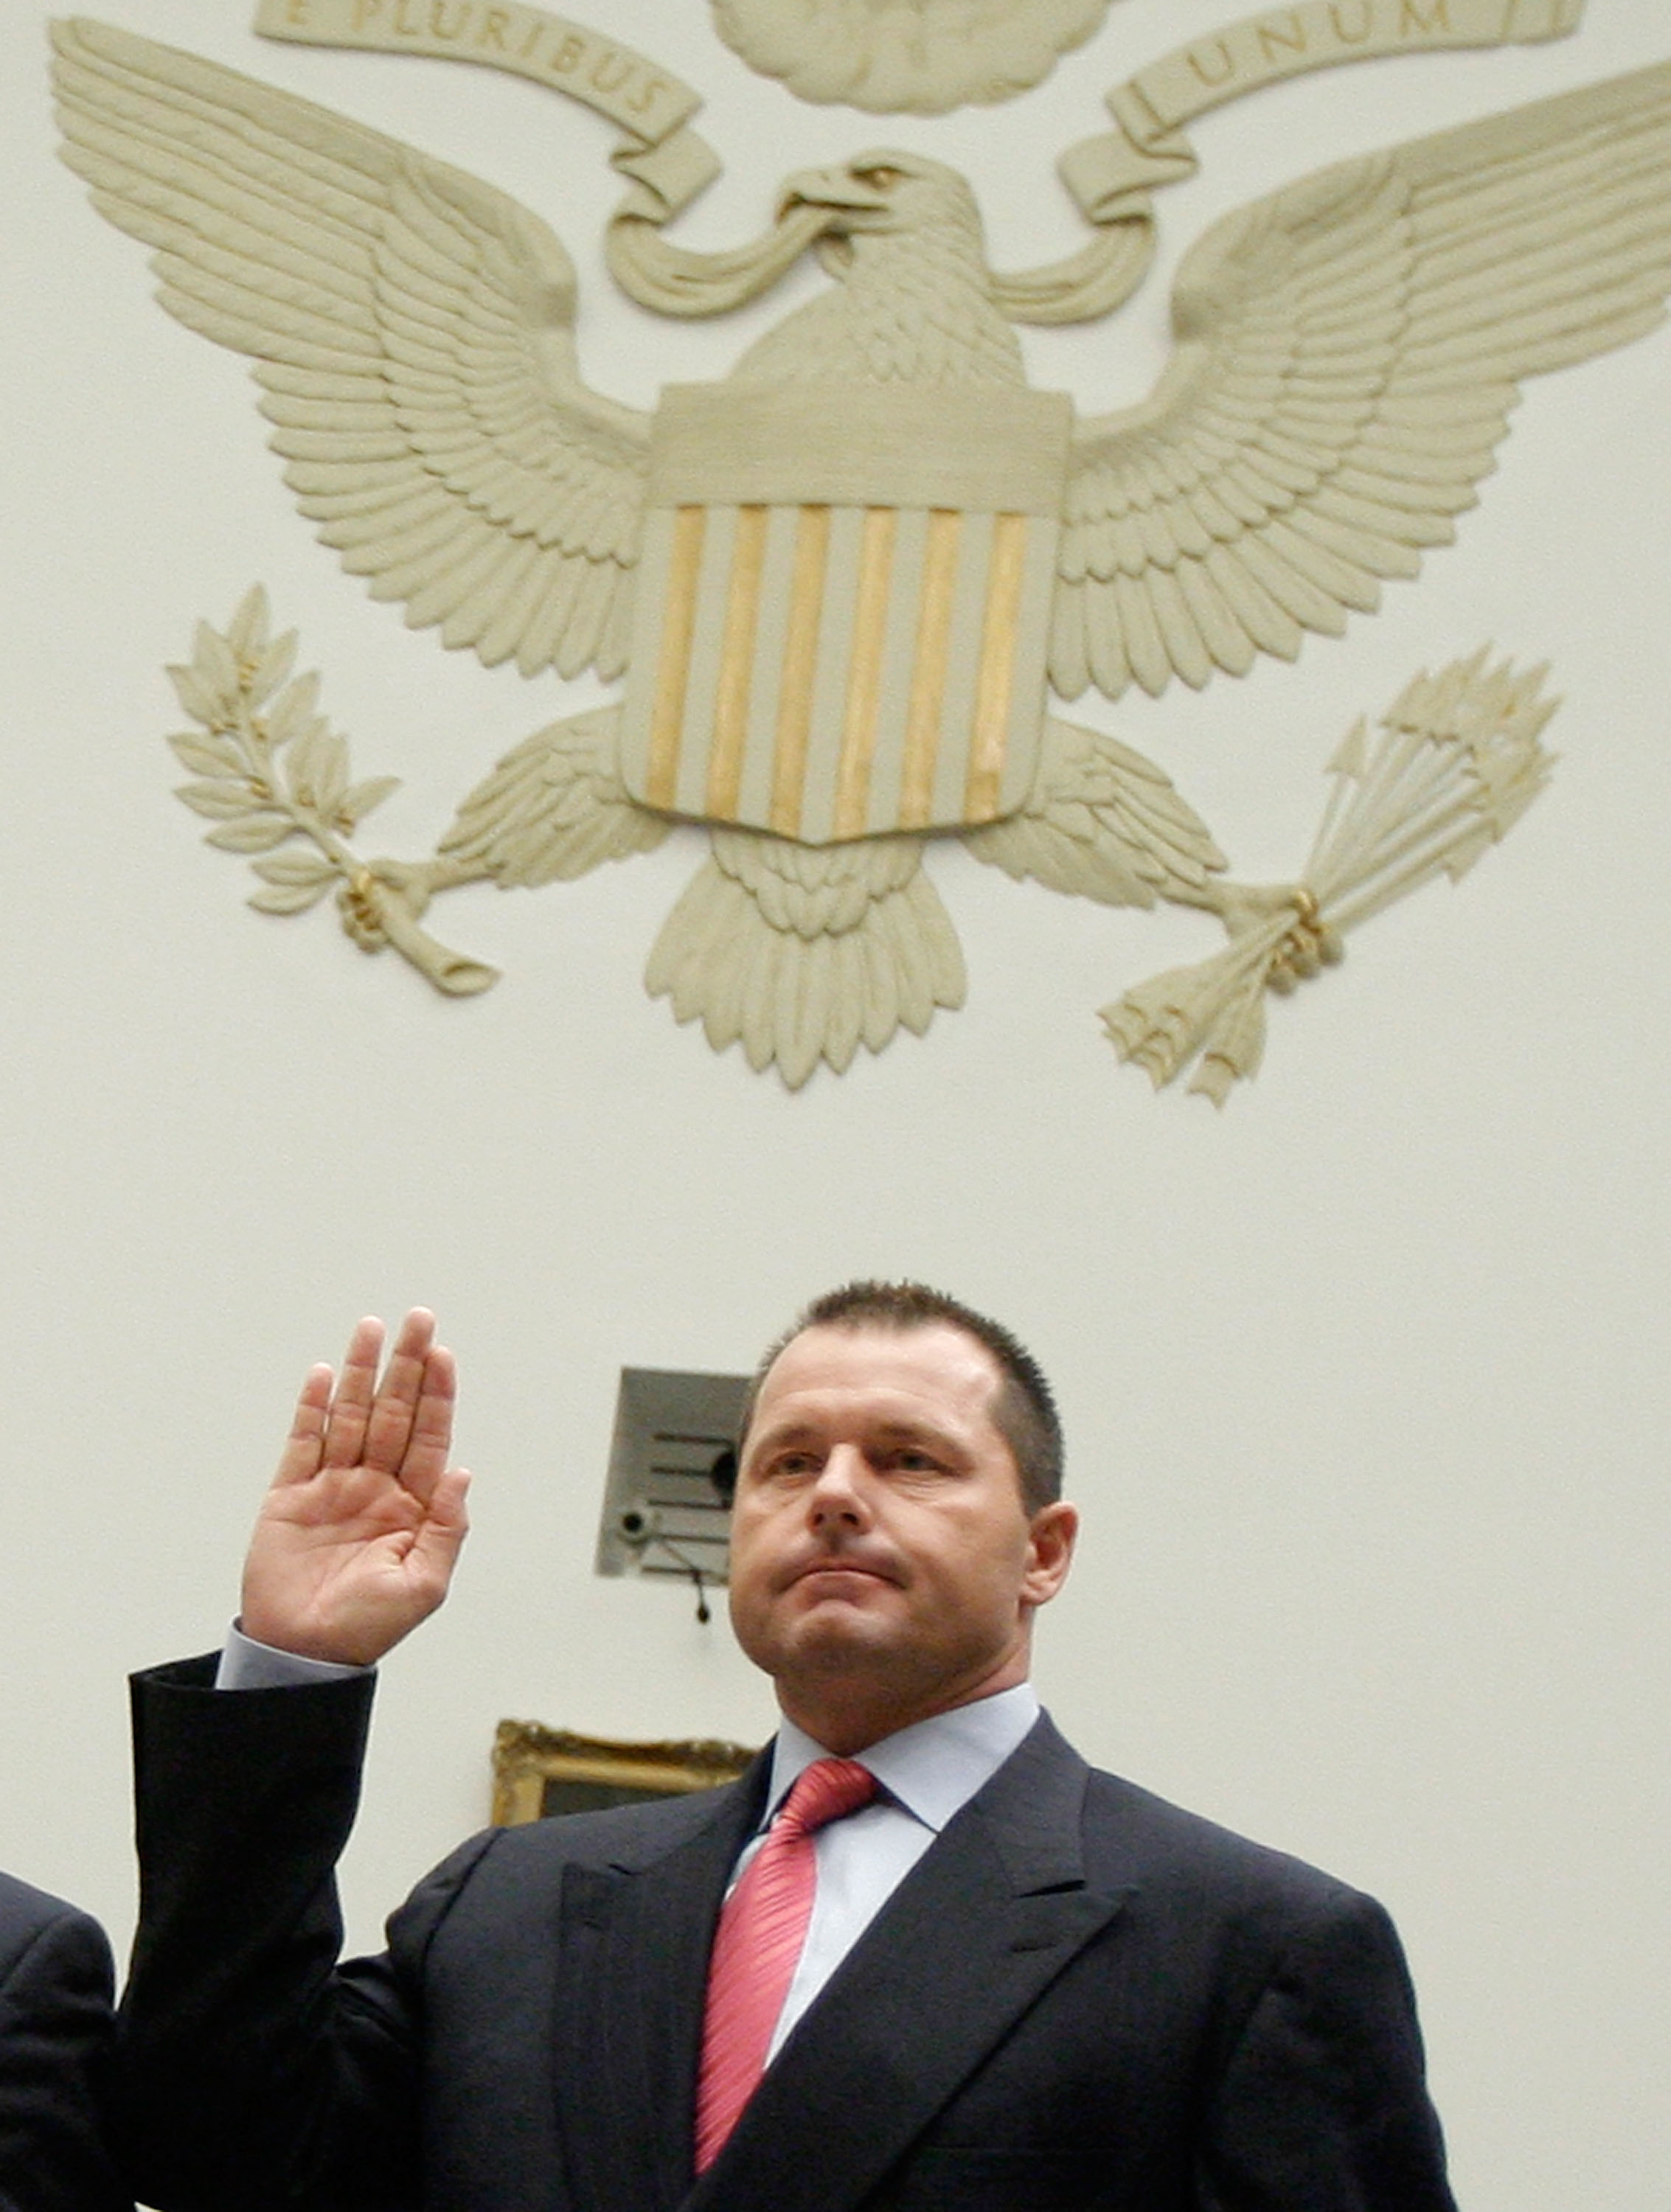 WASHINGTON - FEBRUARY 13:  Major League Baseball player Roger Clemens raises his right hand as he is sworn in during a House Oversight and Government Reform Committee, February 13, 2008 in Washington DC. The committee is hearing testimony on the use the i